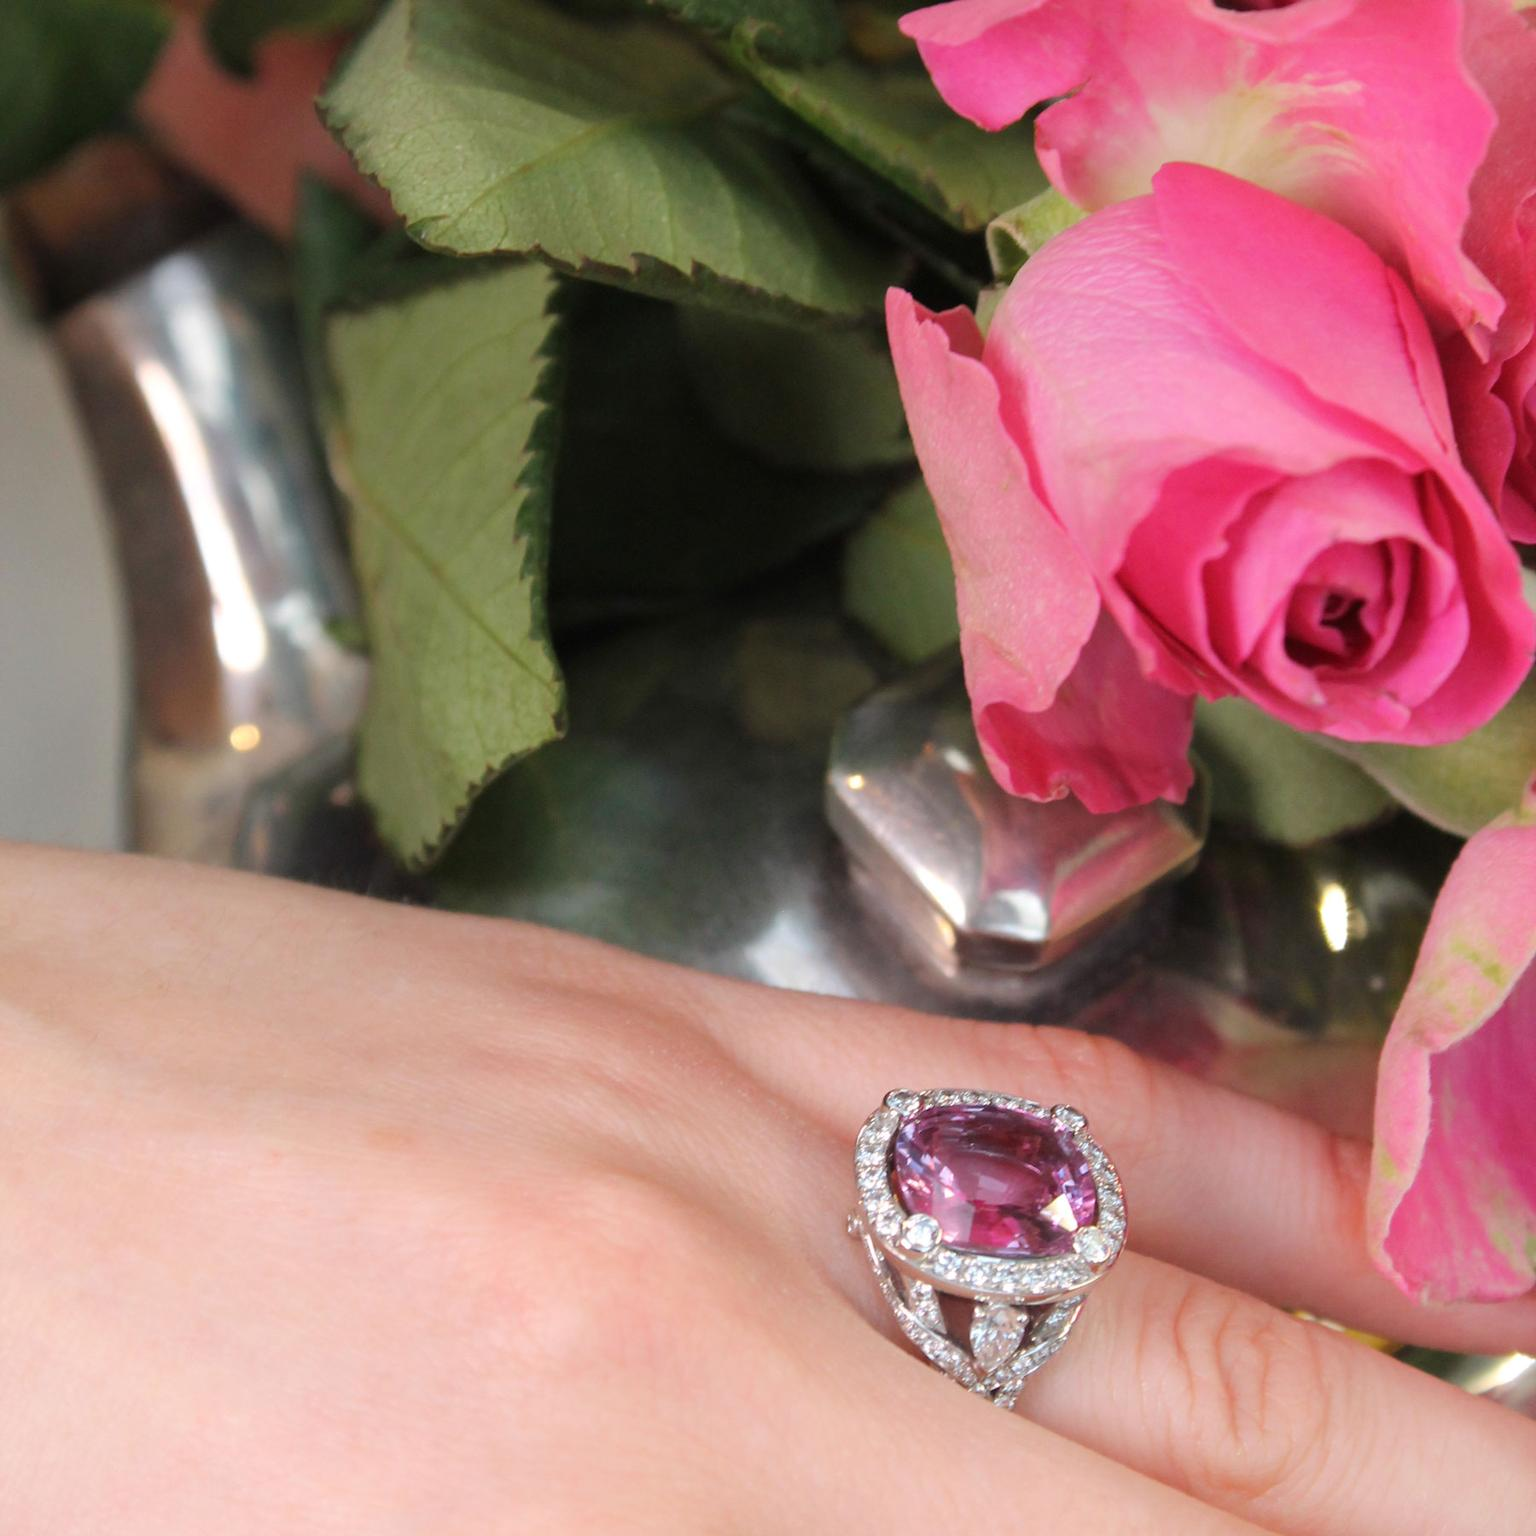 Fabergé pink sapphire engagement ring